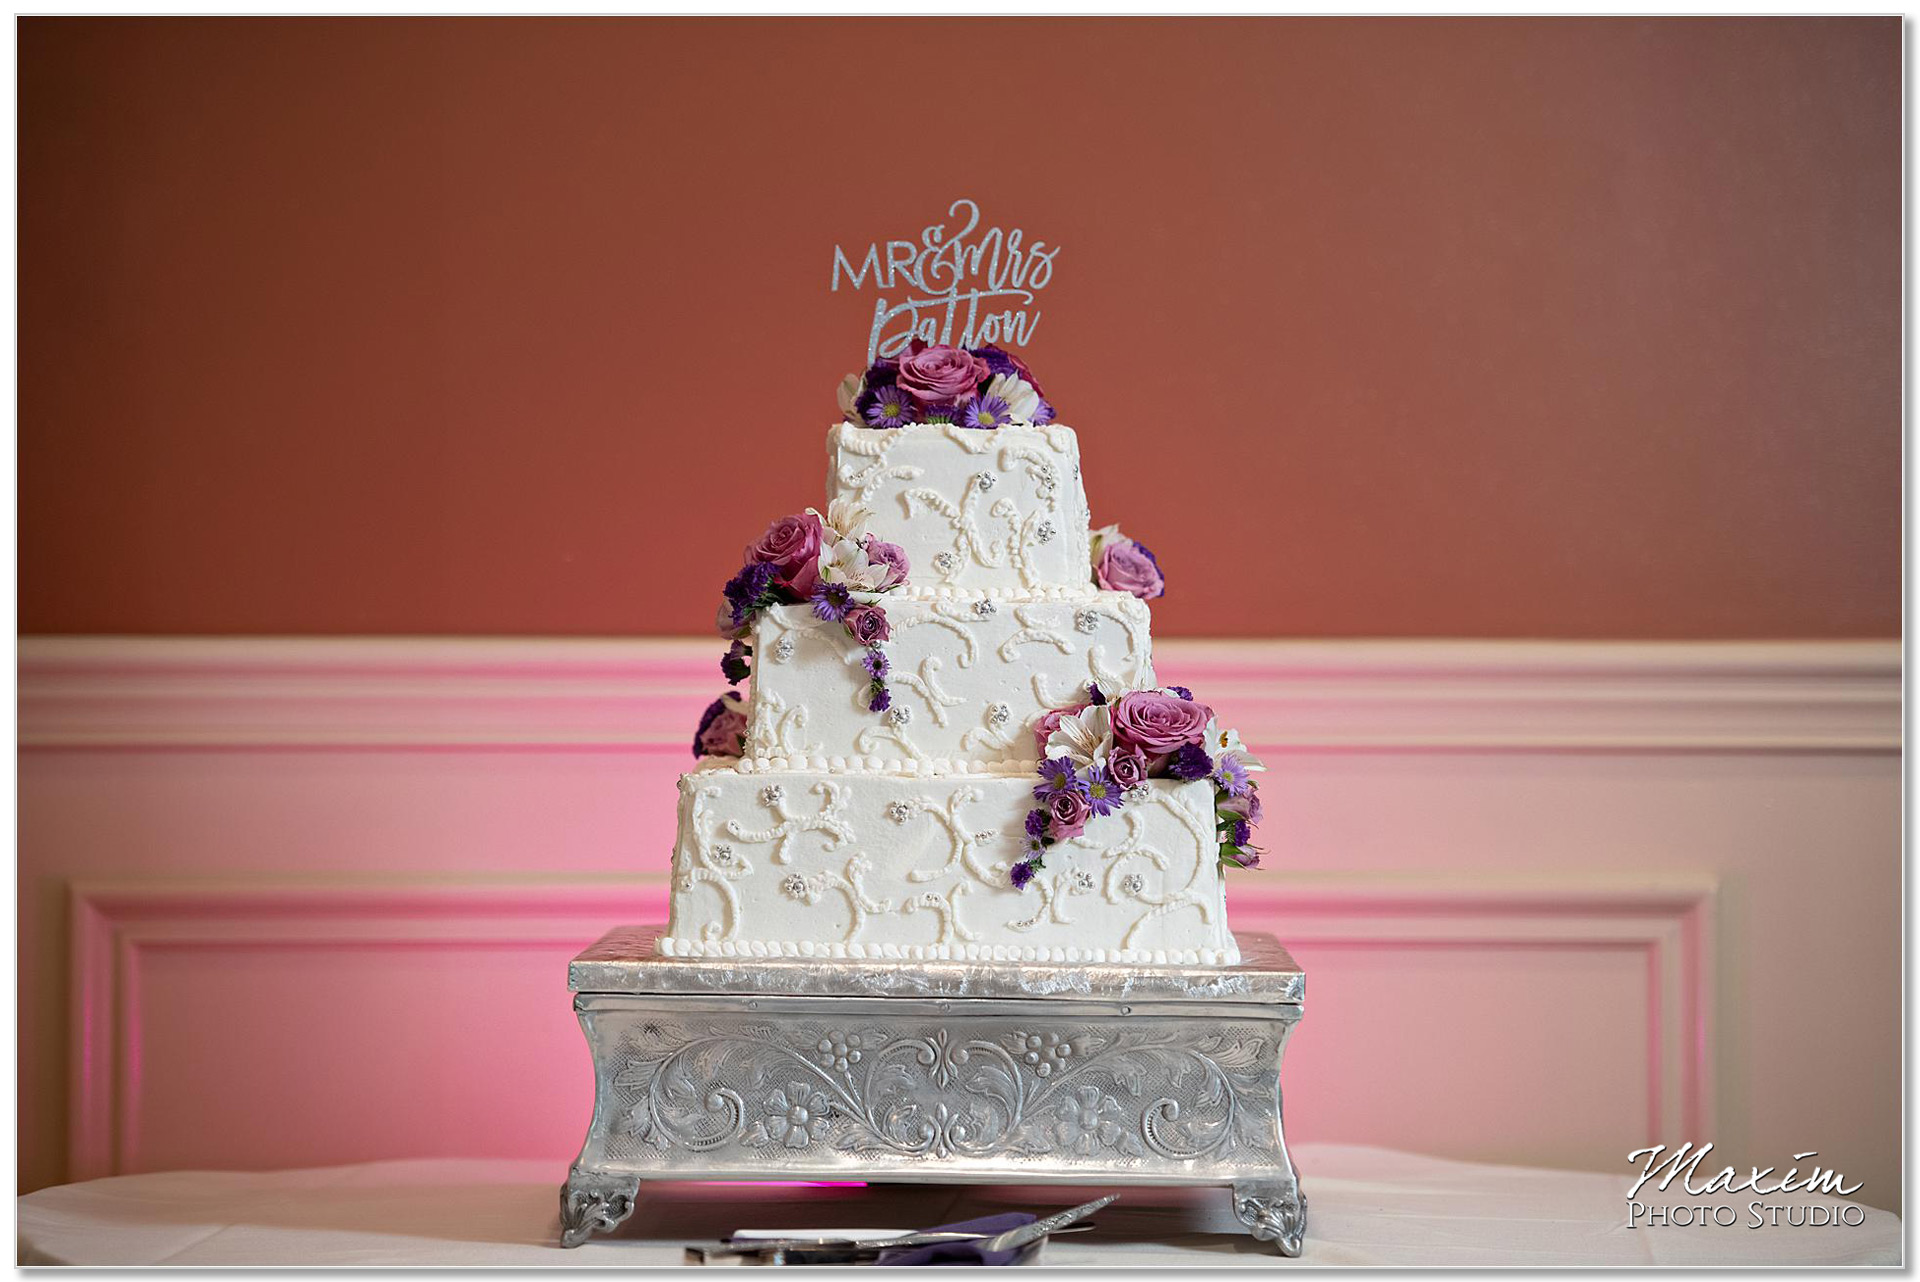 McHales Event and Catering cake